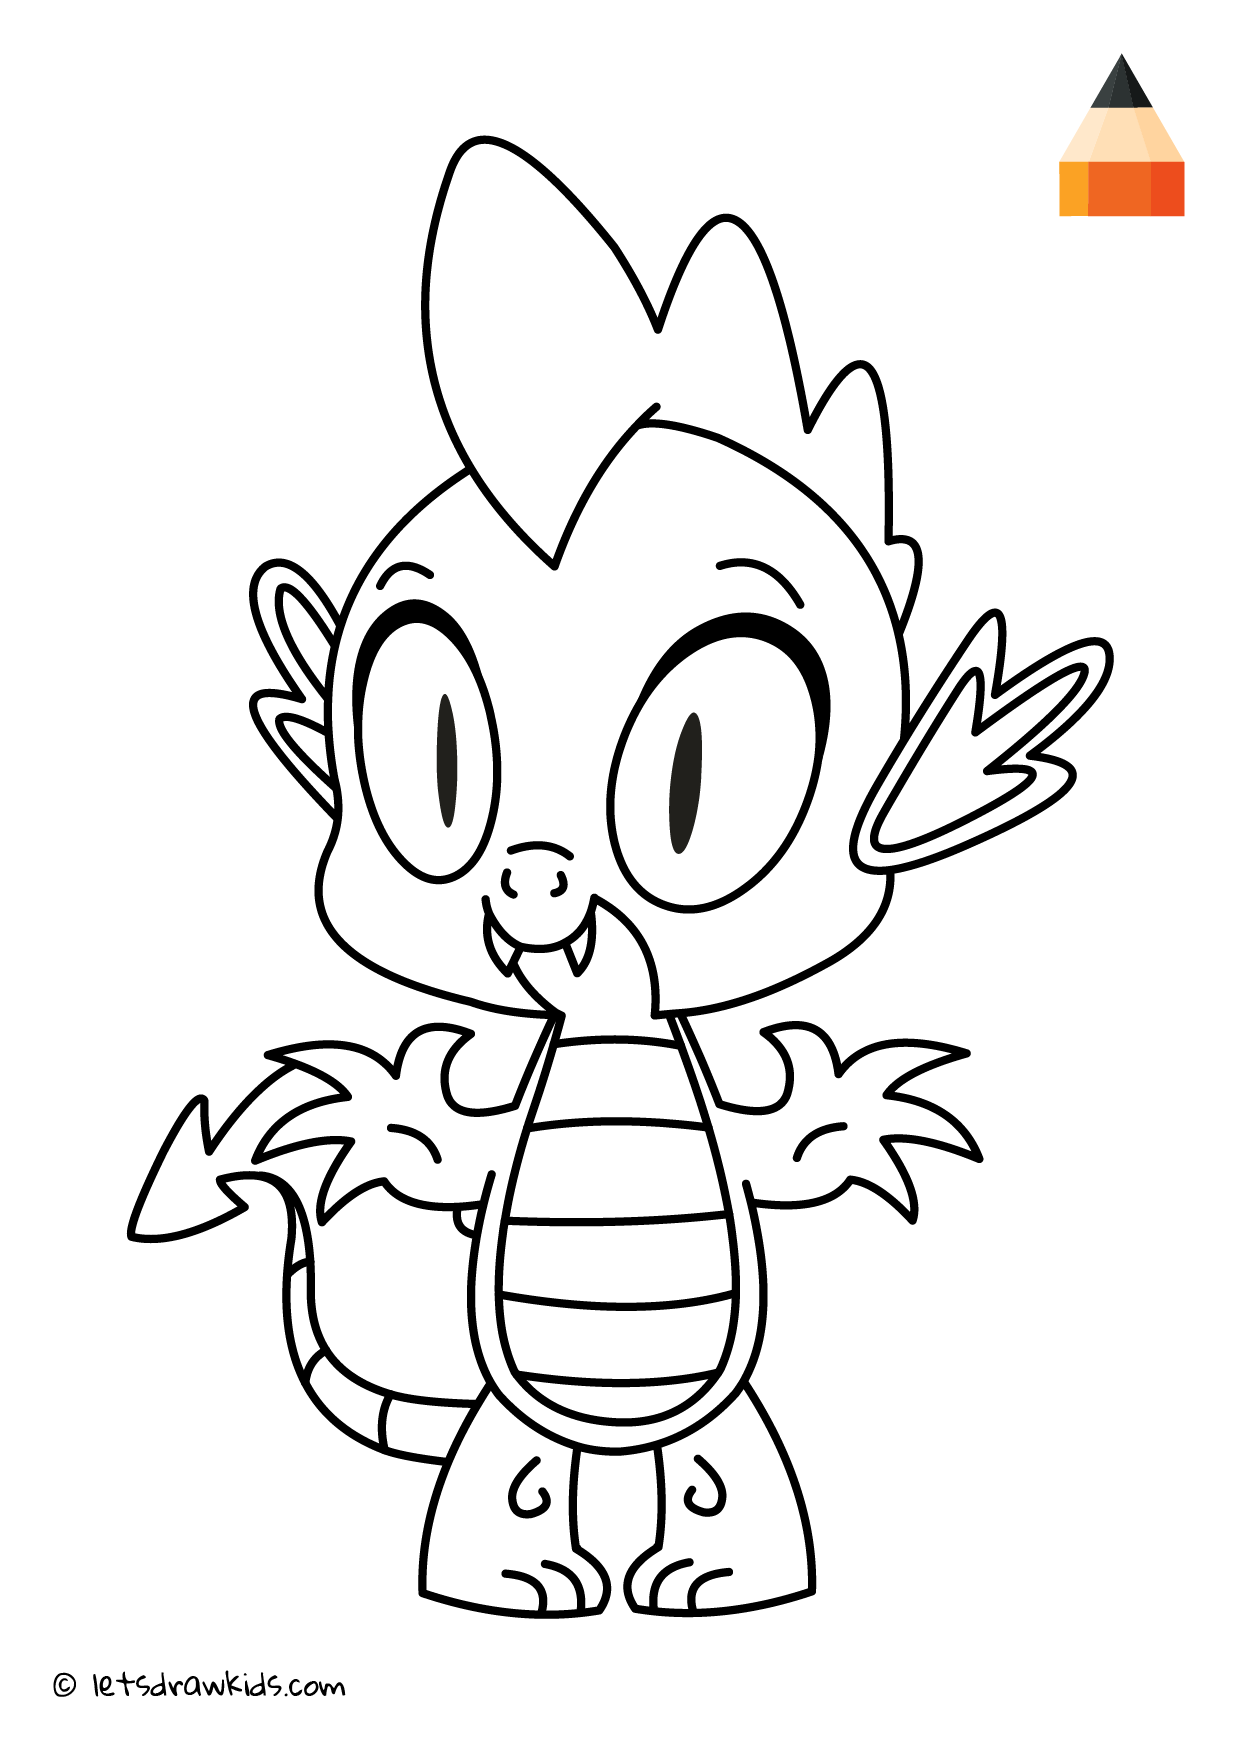 Coloring Page - My Little Pony - Spike